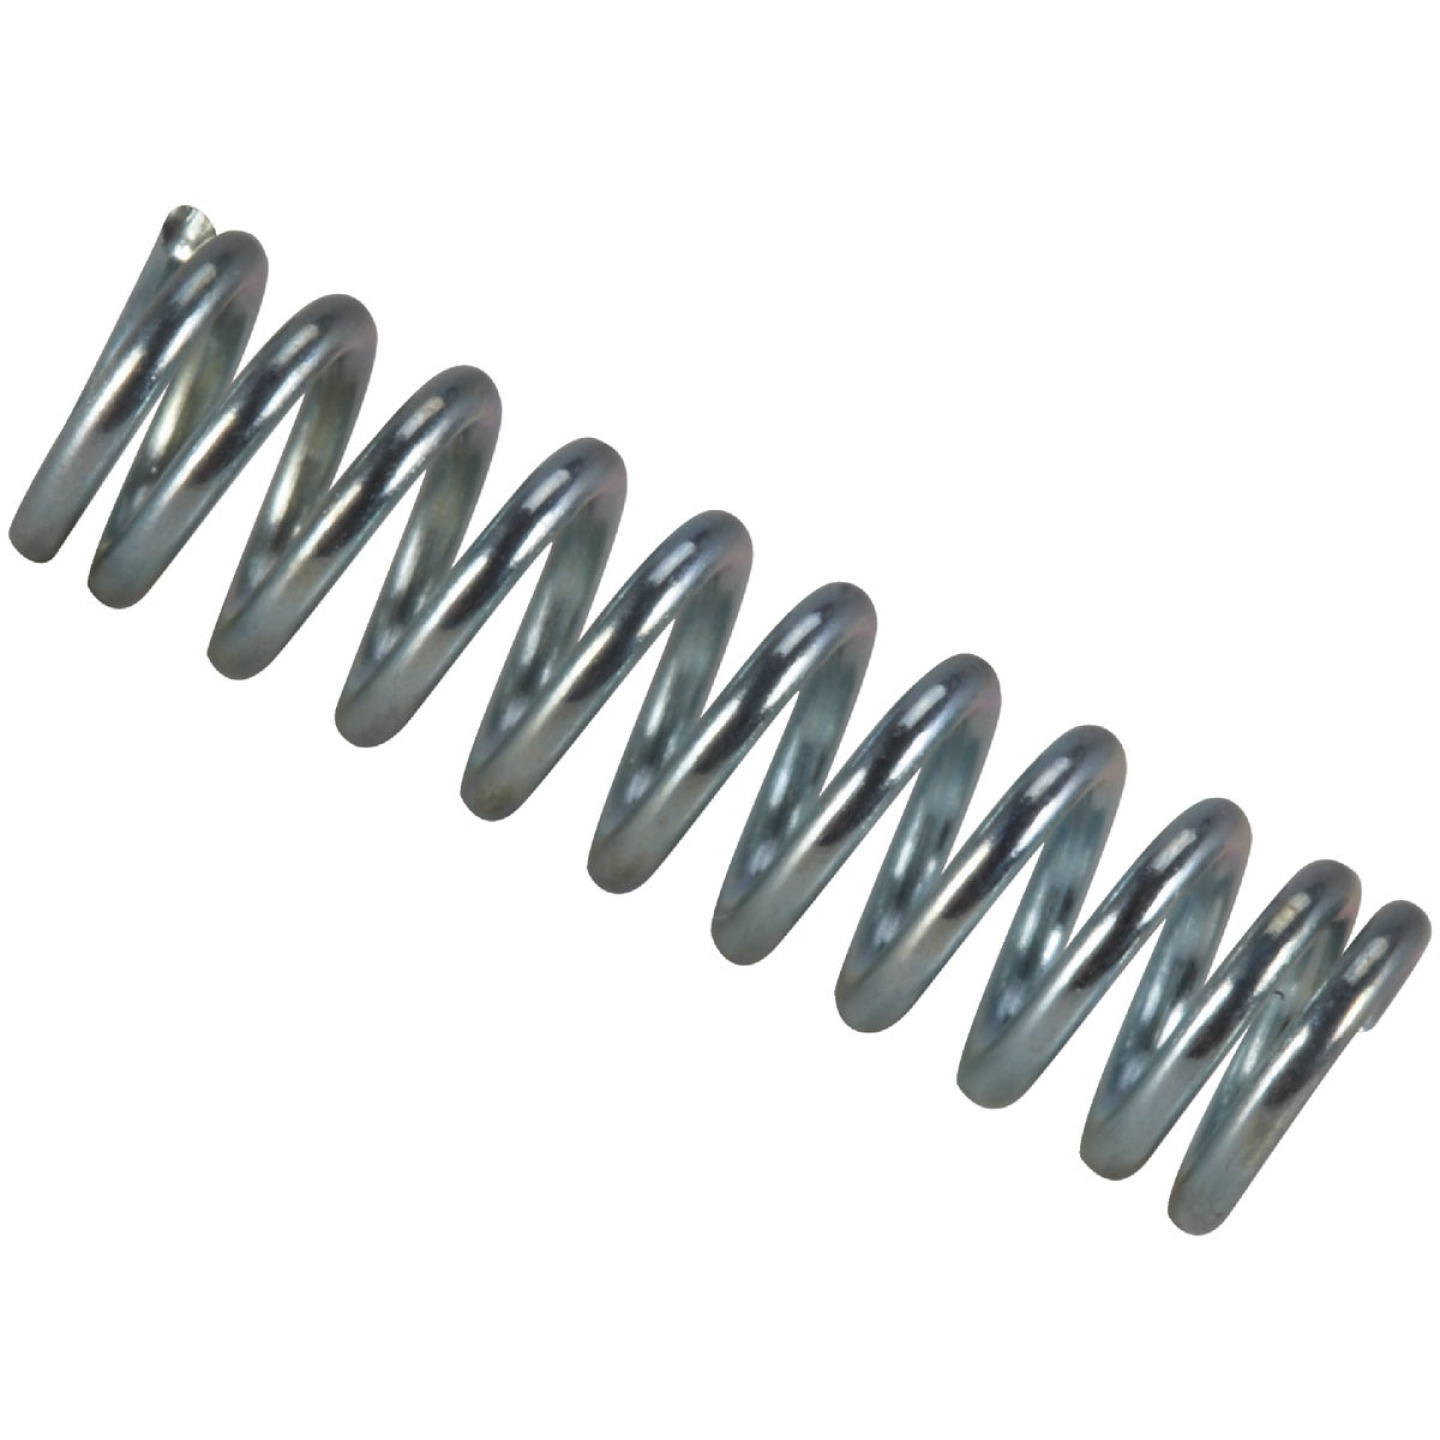 Century Spring 5 In. x 5/8 In. Compression Spring (2 Count) Image 1